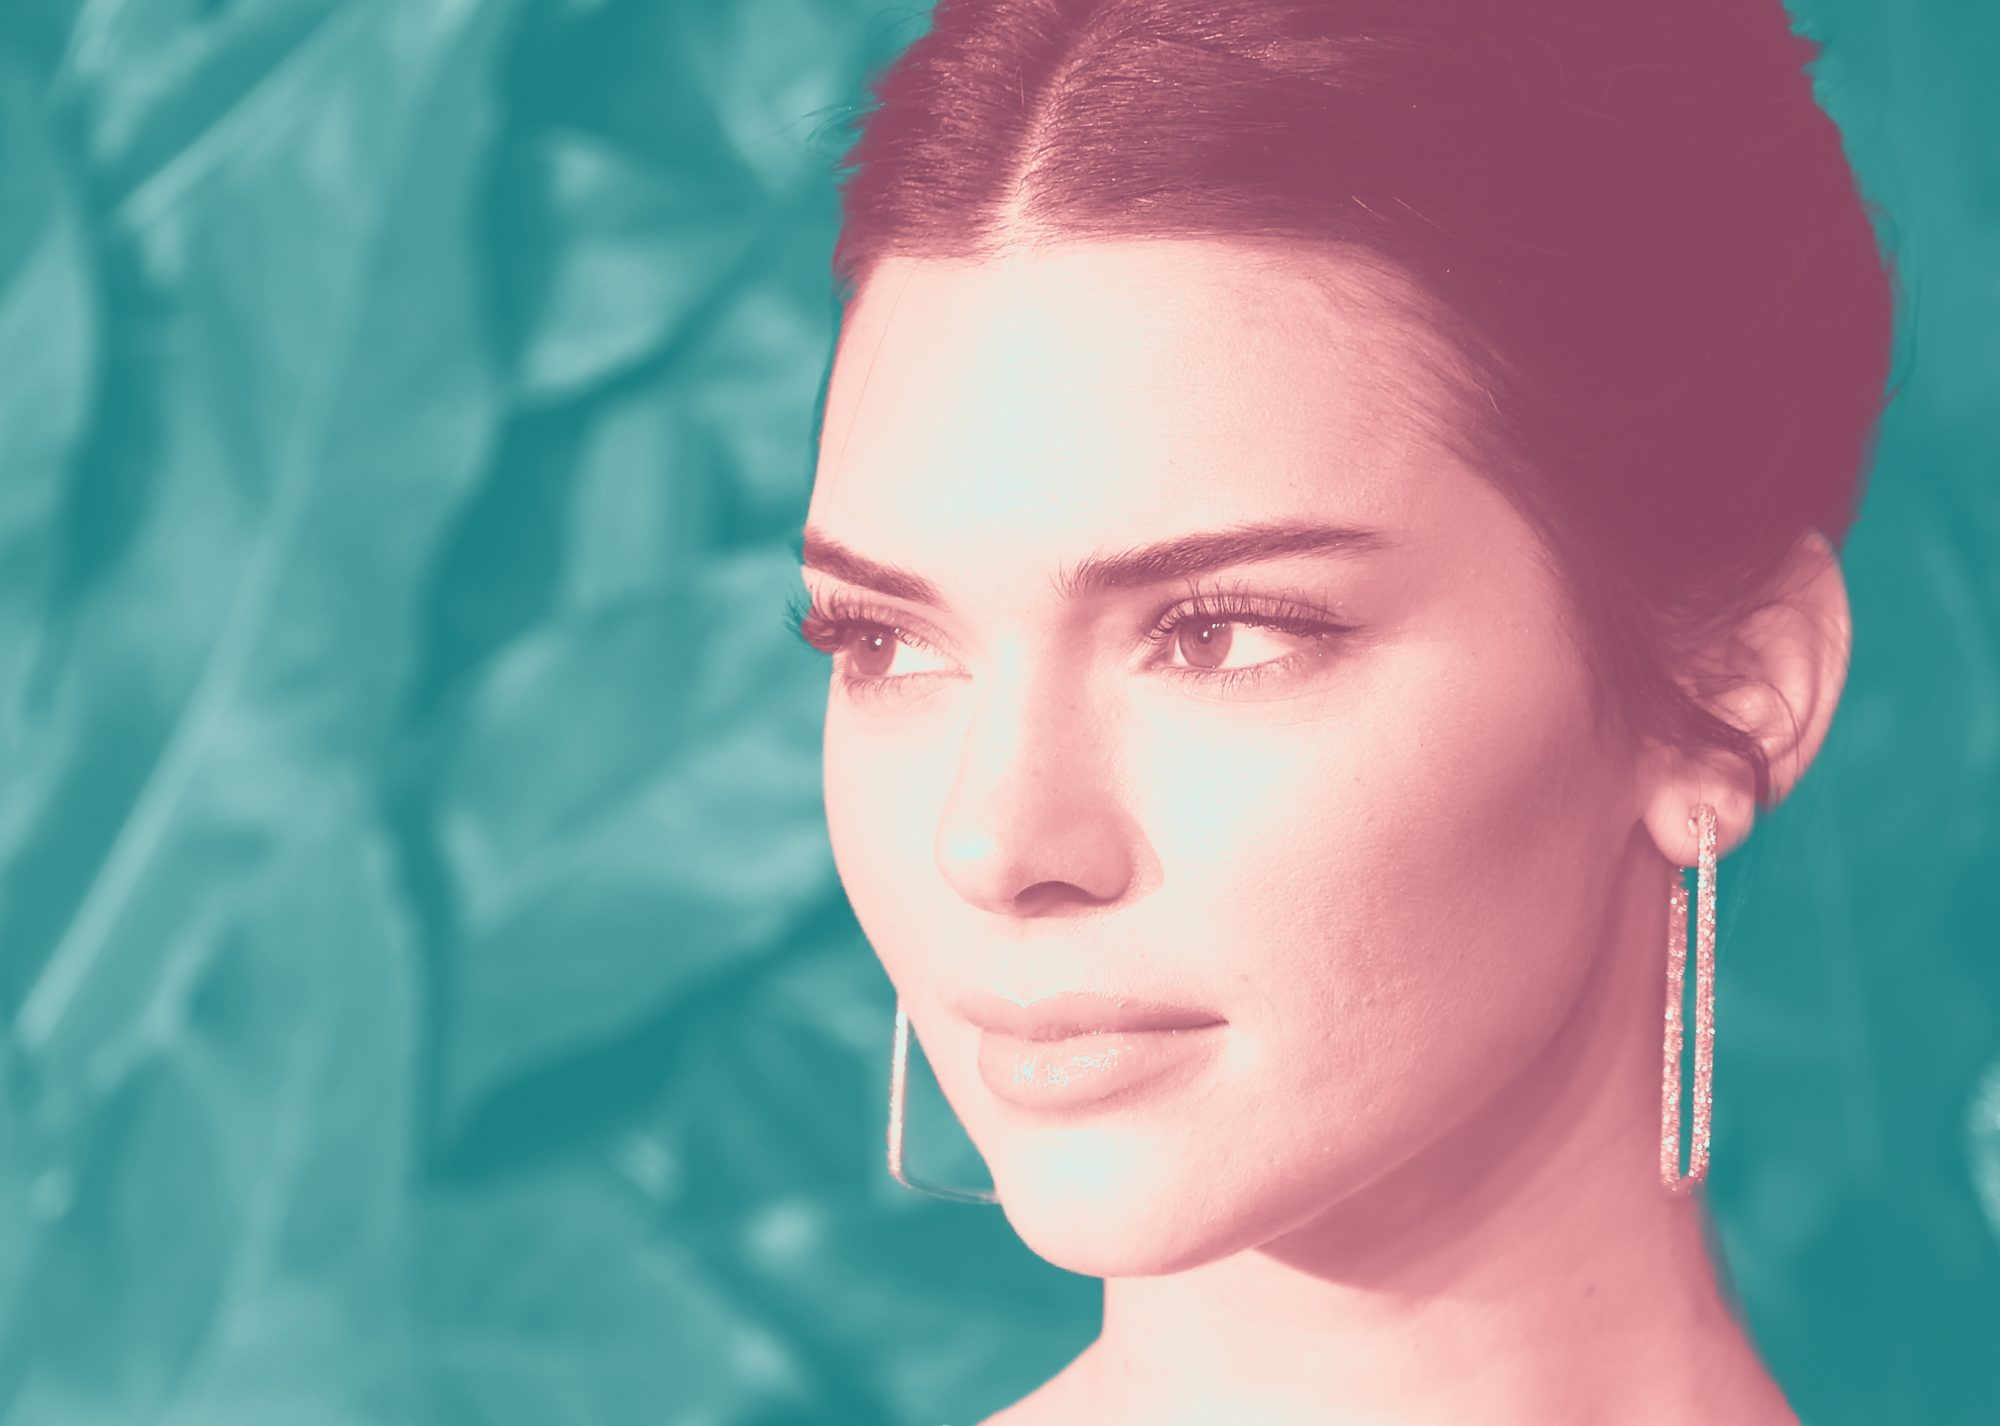 Kendall Jenner Just Debuted Floor-Length Mermaid Waves For a Magazine Shoot